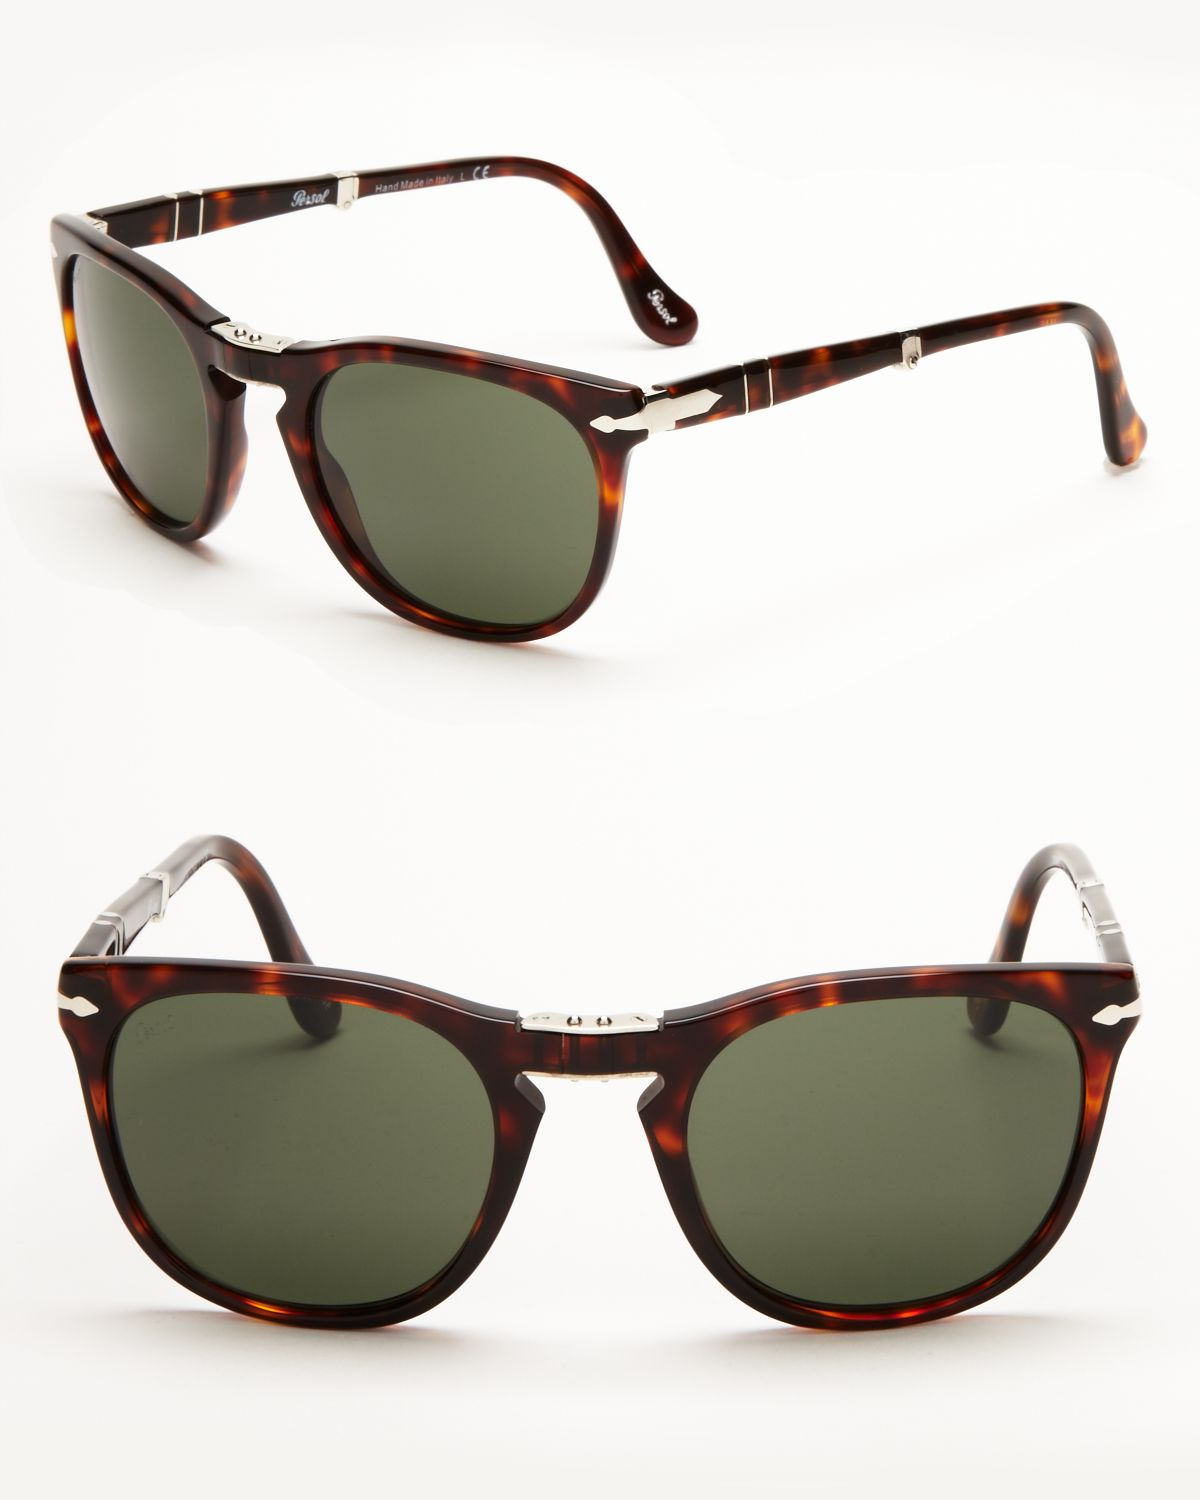 221ab12774 Persol Folding Keyhole Sunglasses in Brown for Men - Lyst